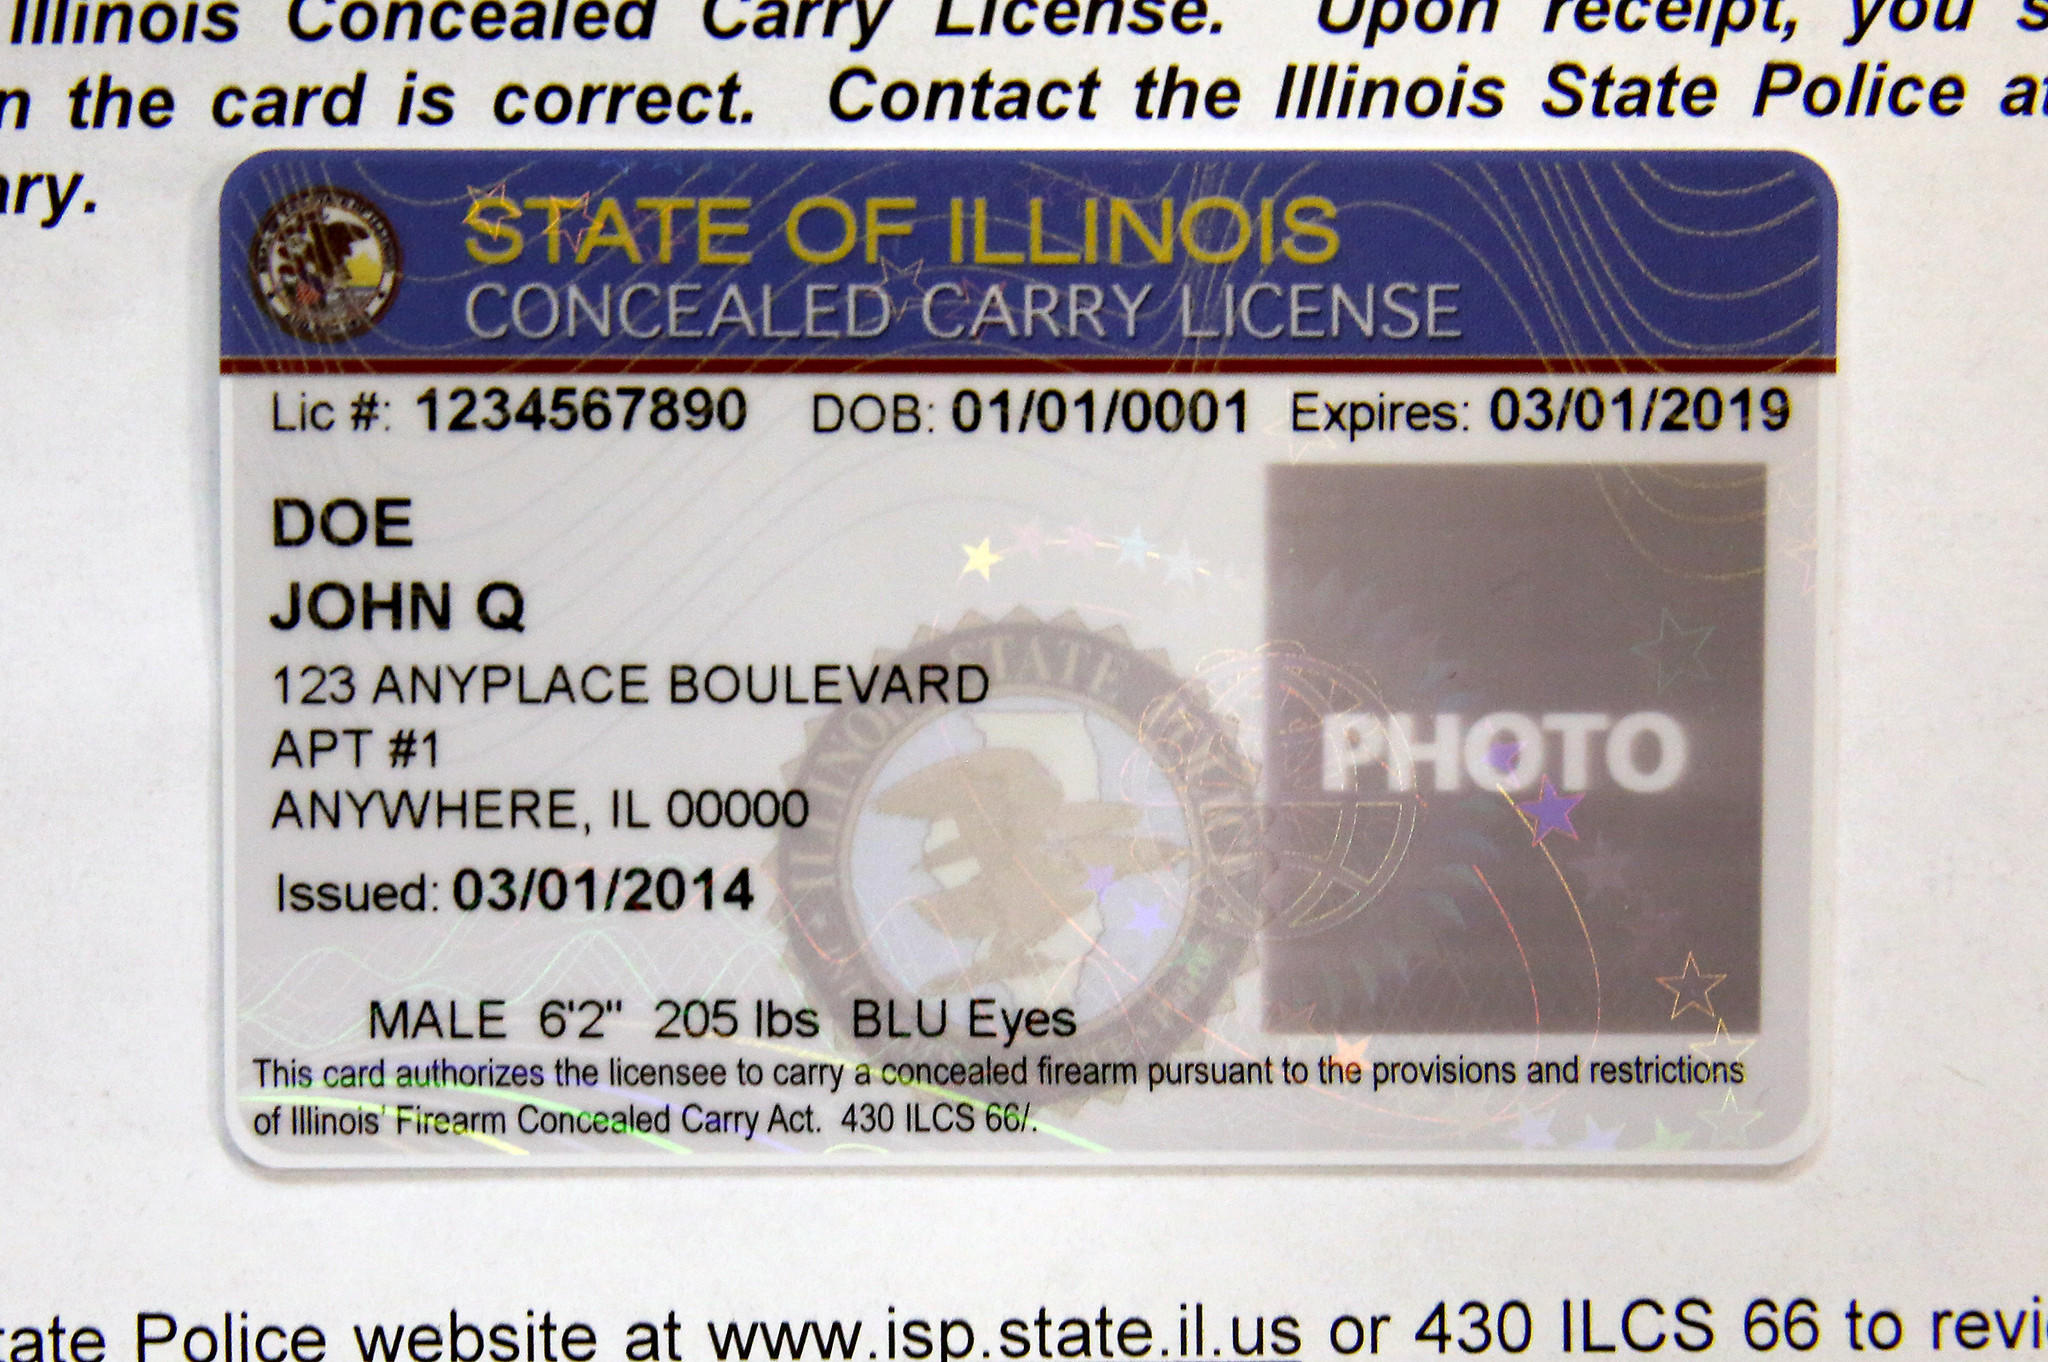 Sample of an Illinois concealed carry license.